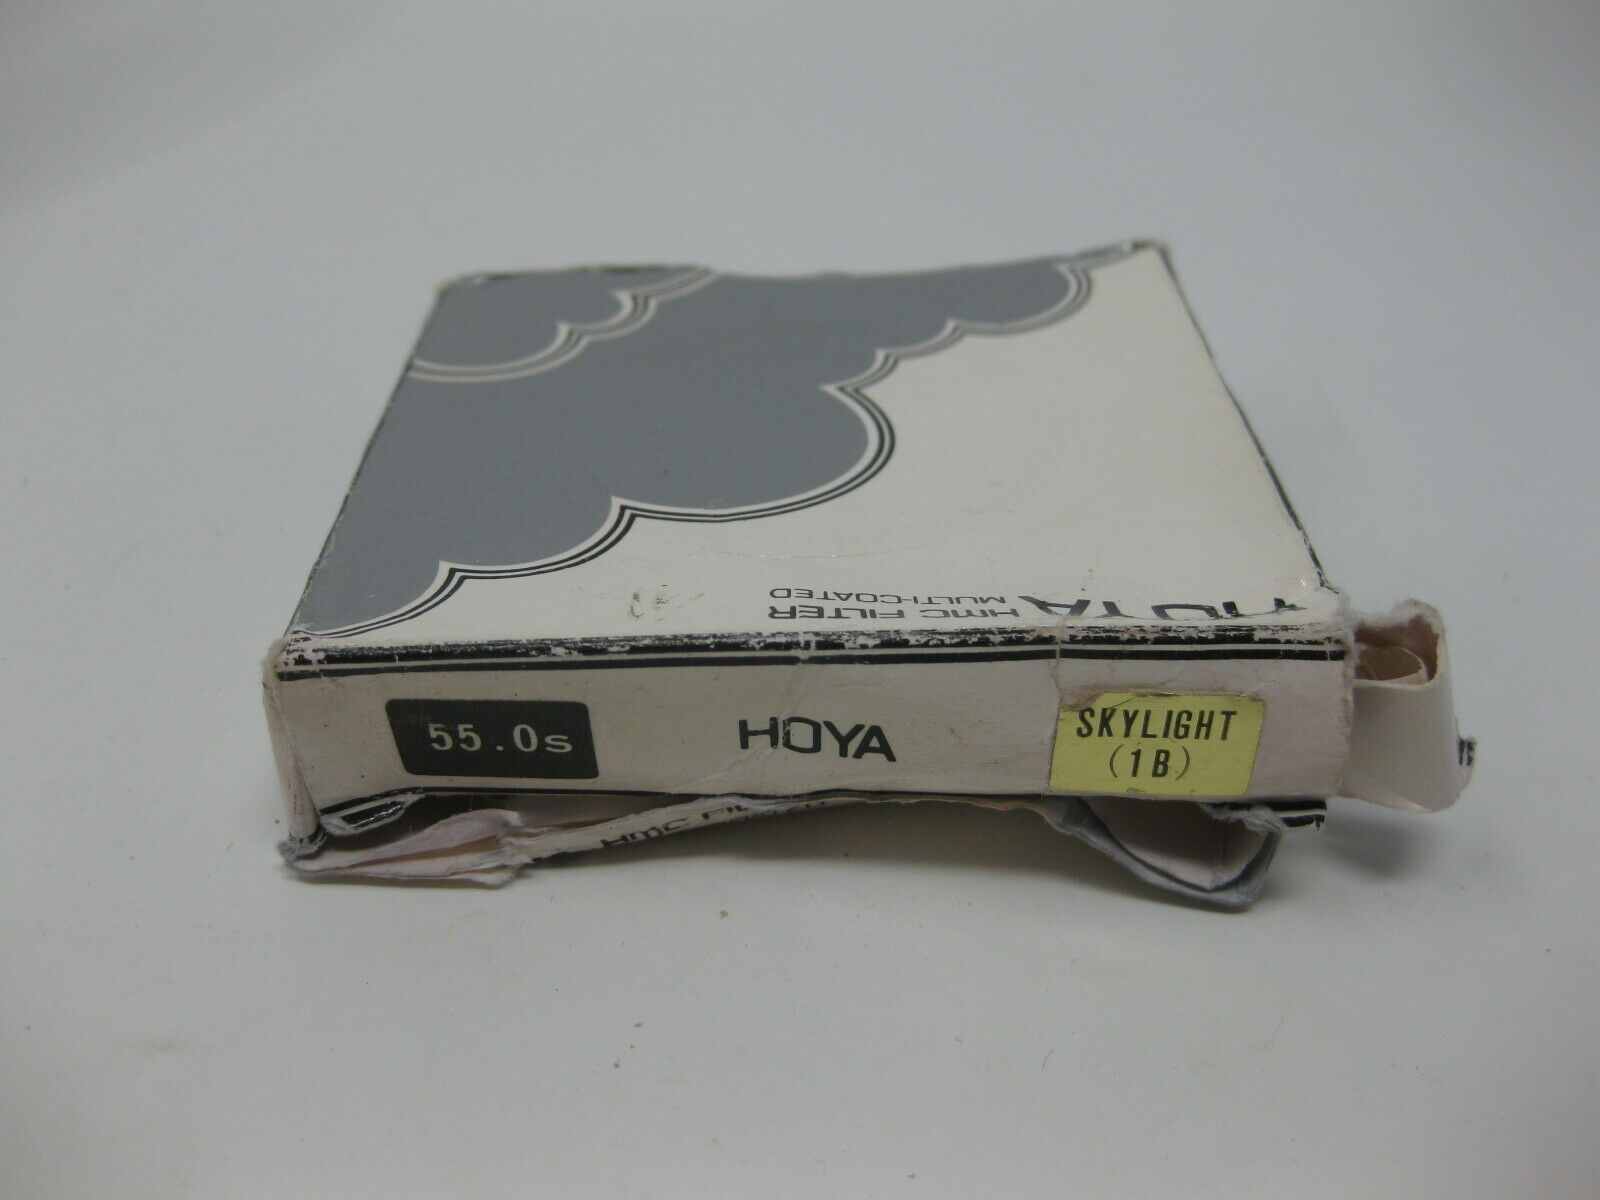 Primary image for HOYA 55mm SKYLIGHT (1B) Lens Filter - Unused New - Damaged Box